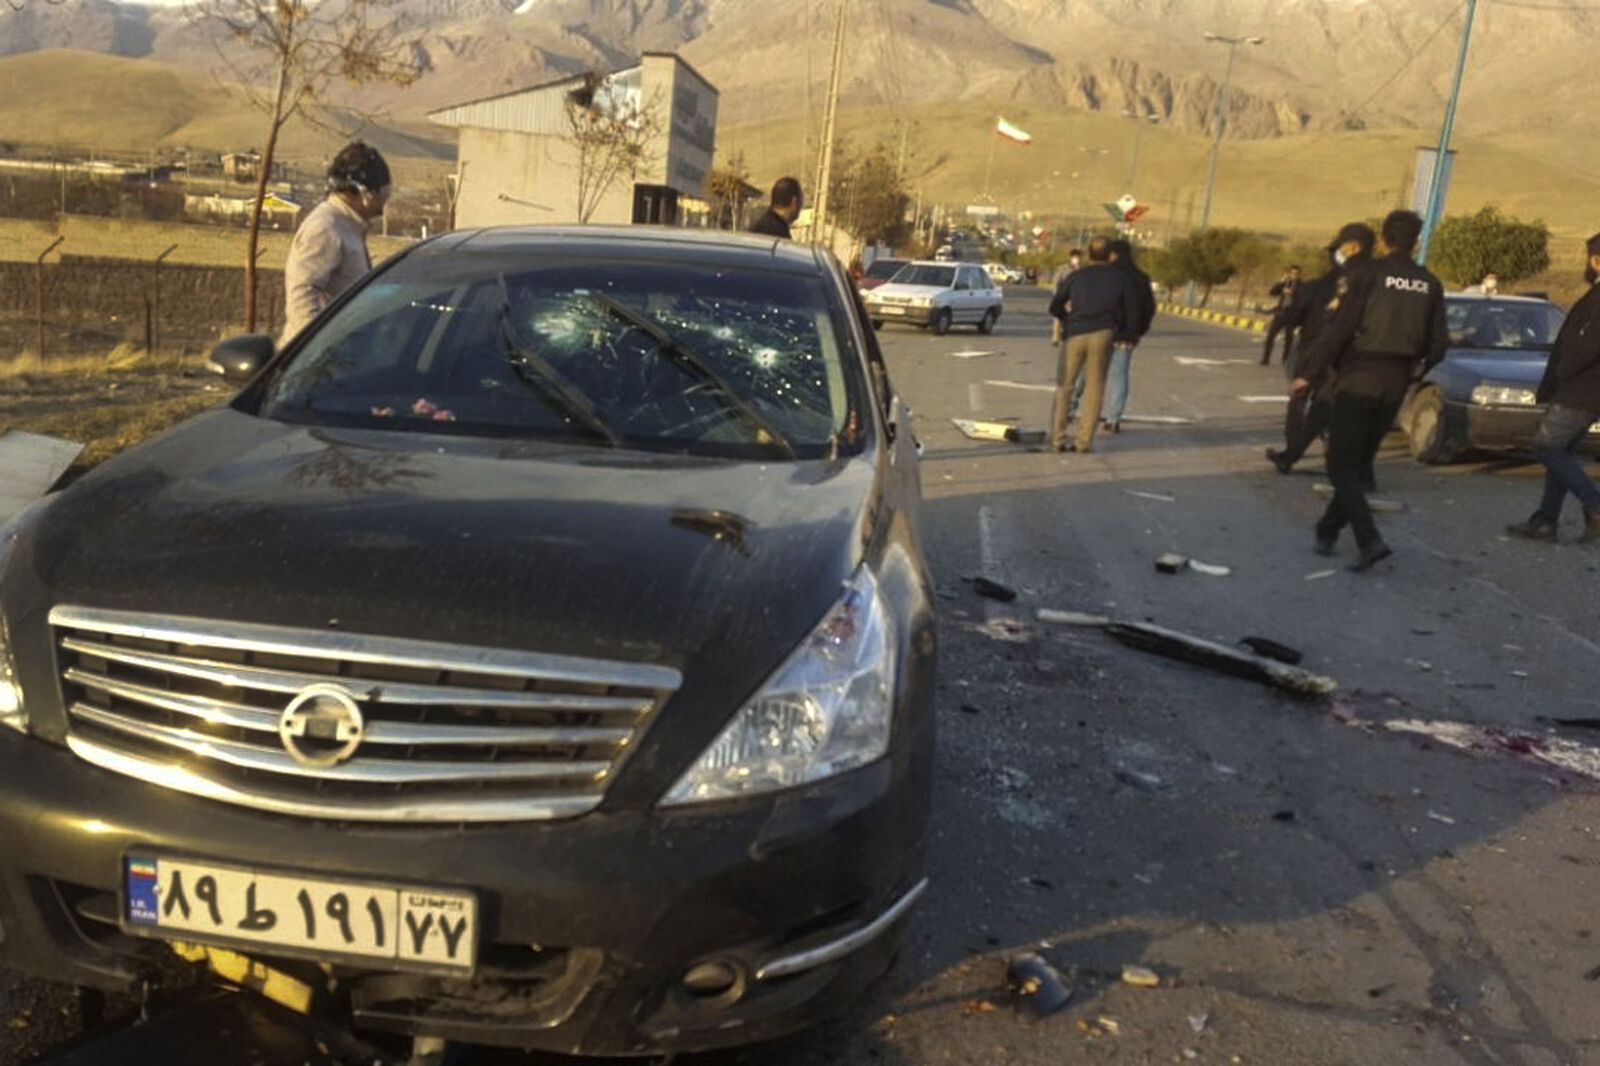 WARNING: THIS PHOTO MAY BE UPSETTING TO SOME VIEWERS. This photo released by the semi-official Fars News Agency shows the scene where Mohsen Fakhrizadeh was killed in Absard, a small city just east of the capital, Tehran, Iran, Friday, Nov. 27, 2020. (Fars News Agency via AP)